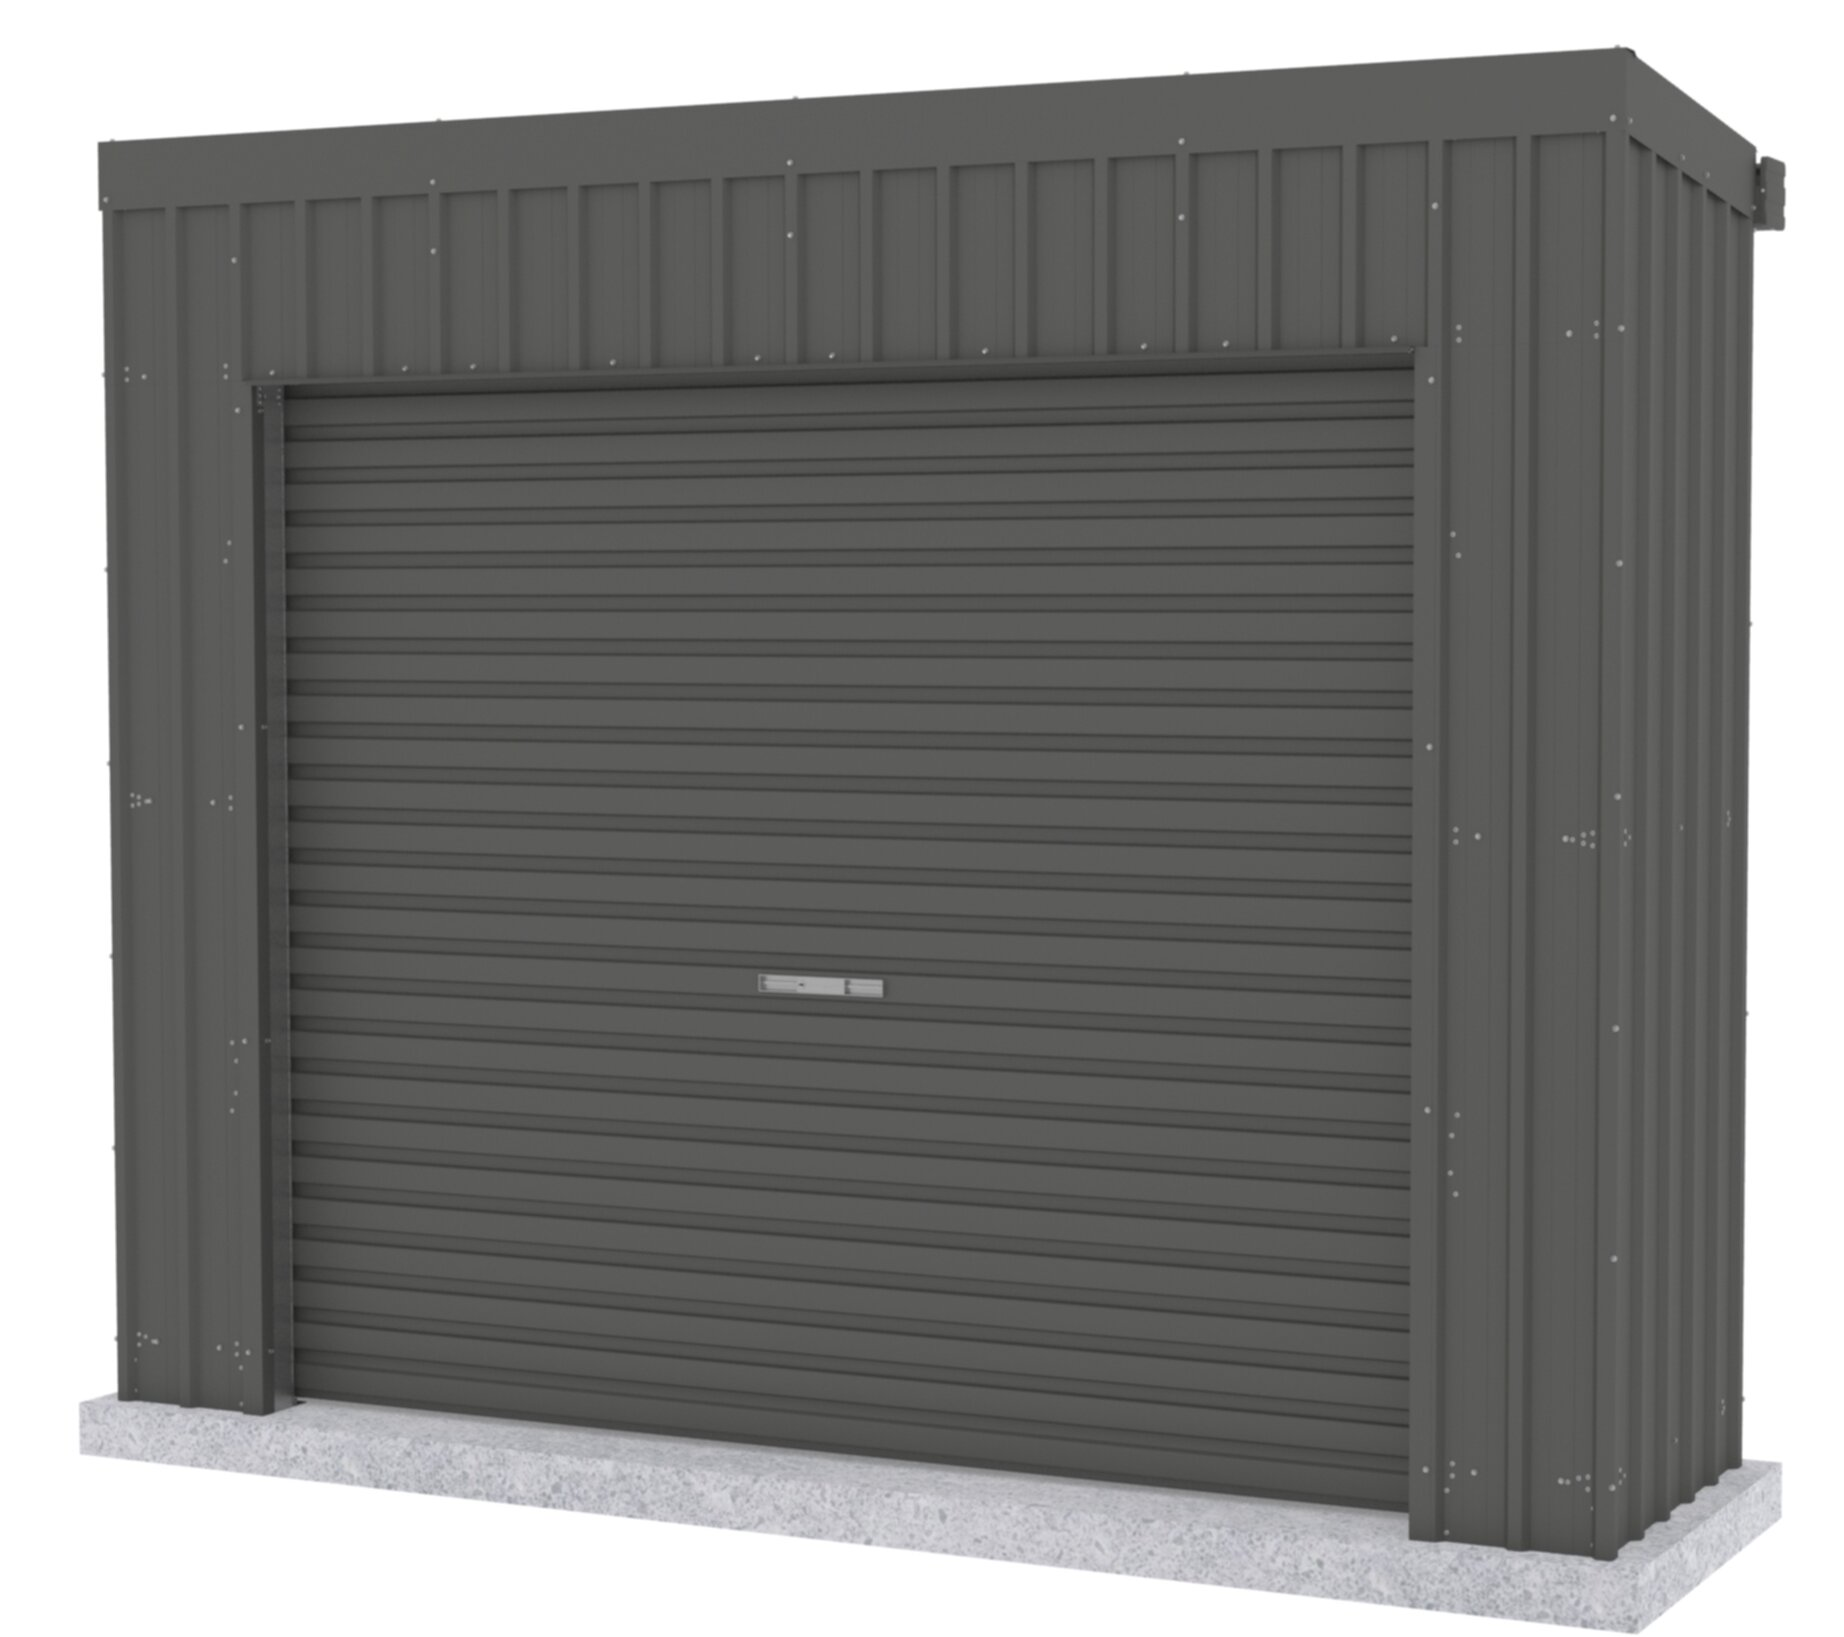 Absco Fortress 10 Ft W X 3 Ft D Metal Vertical Storage Shed Wayfair